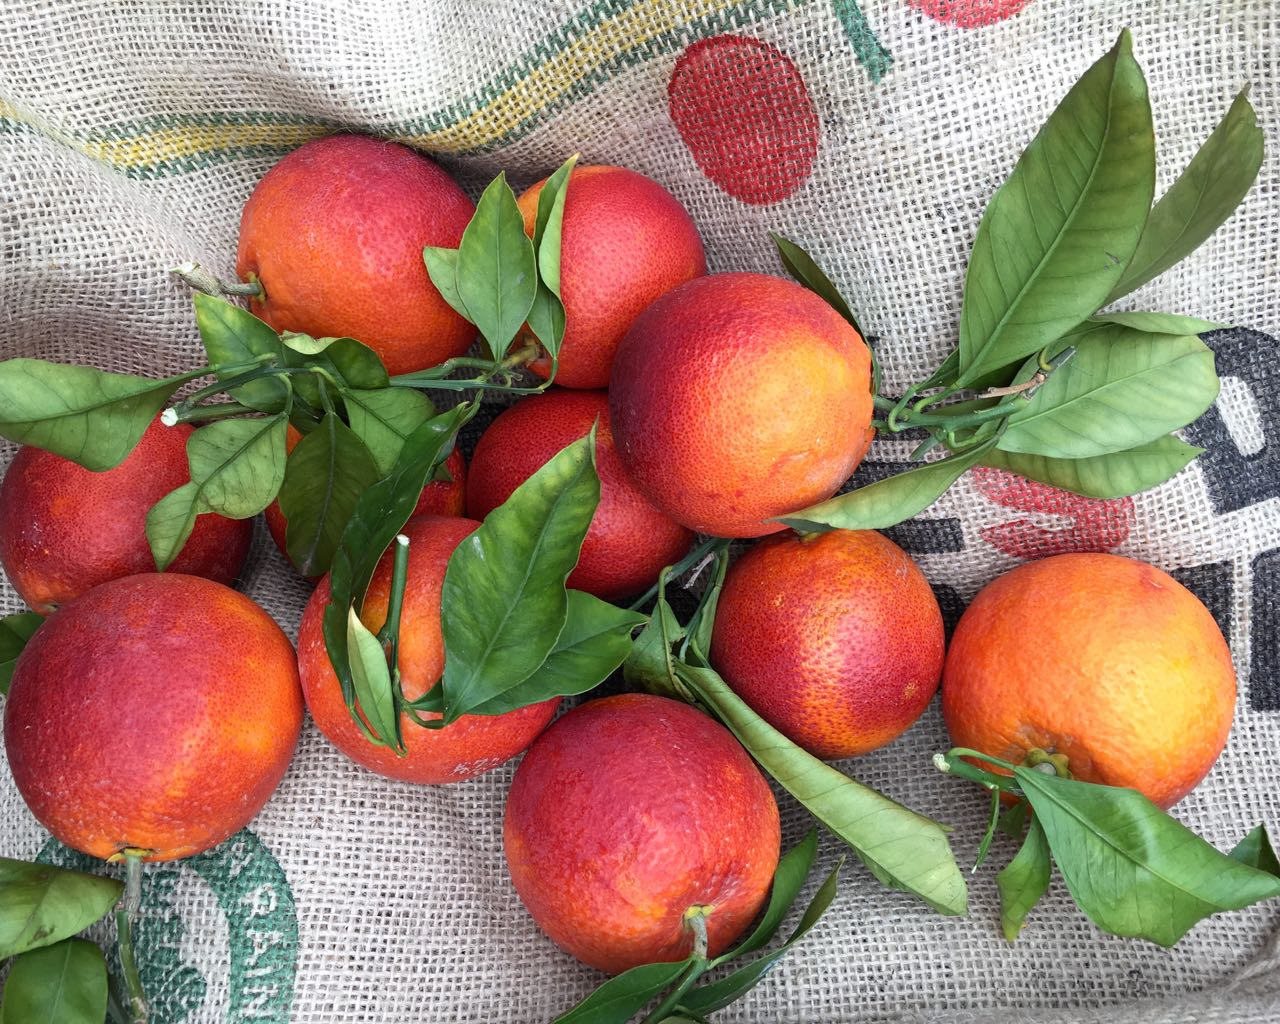 Sicilian Tarocco Fire Oranges    Photo ©Evie Saffron Strands      MARCH     Through February, British-grown hardy brassicas and winter stores of root crops have been essentials in our kitchens. The pink and red stems of Yorkshire Forced Rhubarb, vibrant Radicchio leaves and fragrant Sicilian Citrus brought colour to our lives in what has turned out to be a truly wintery scene. As I write, heavy snow is falling. Here in London, sturdy boots and warm scarves and hats are essential. Even southern Europe hasn't been spared this winter.    In March, to add to our greens and roots, we are at our most reliant on southern Europe whose milder temperatures give their farmers a head-start over our own growers. We turn to South Africa and South America for a few items. This month we would normally expect the first of our supplies of deliciously sweet peas, tender broad beans, pungent wild garlic leaves and juicy wet garlic to propel us into spring. The latest blast of cold, when even Rome has been blanketed in snow, comes just as they are raising early spring crops in southern Europe. Spare a thought for growers here in Britain and throughout the rest of Europe right now.